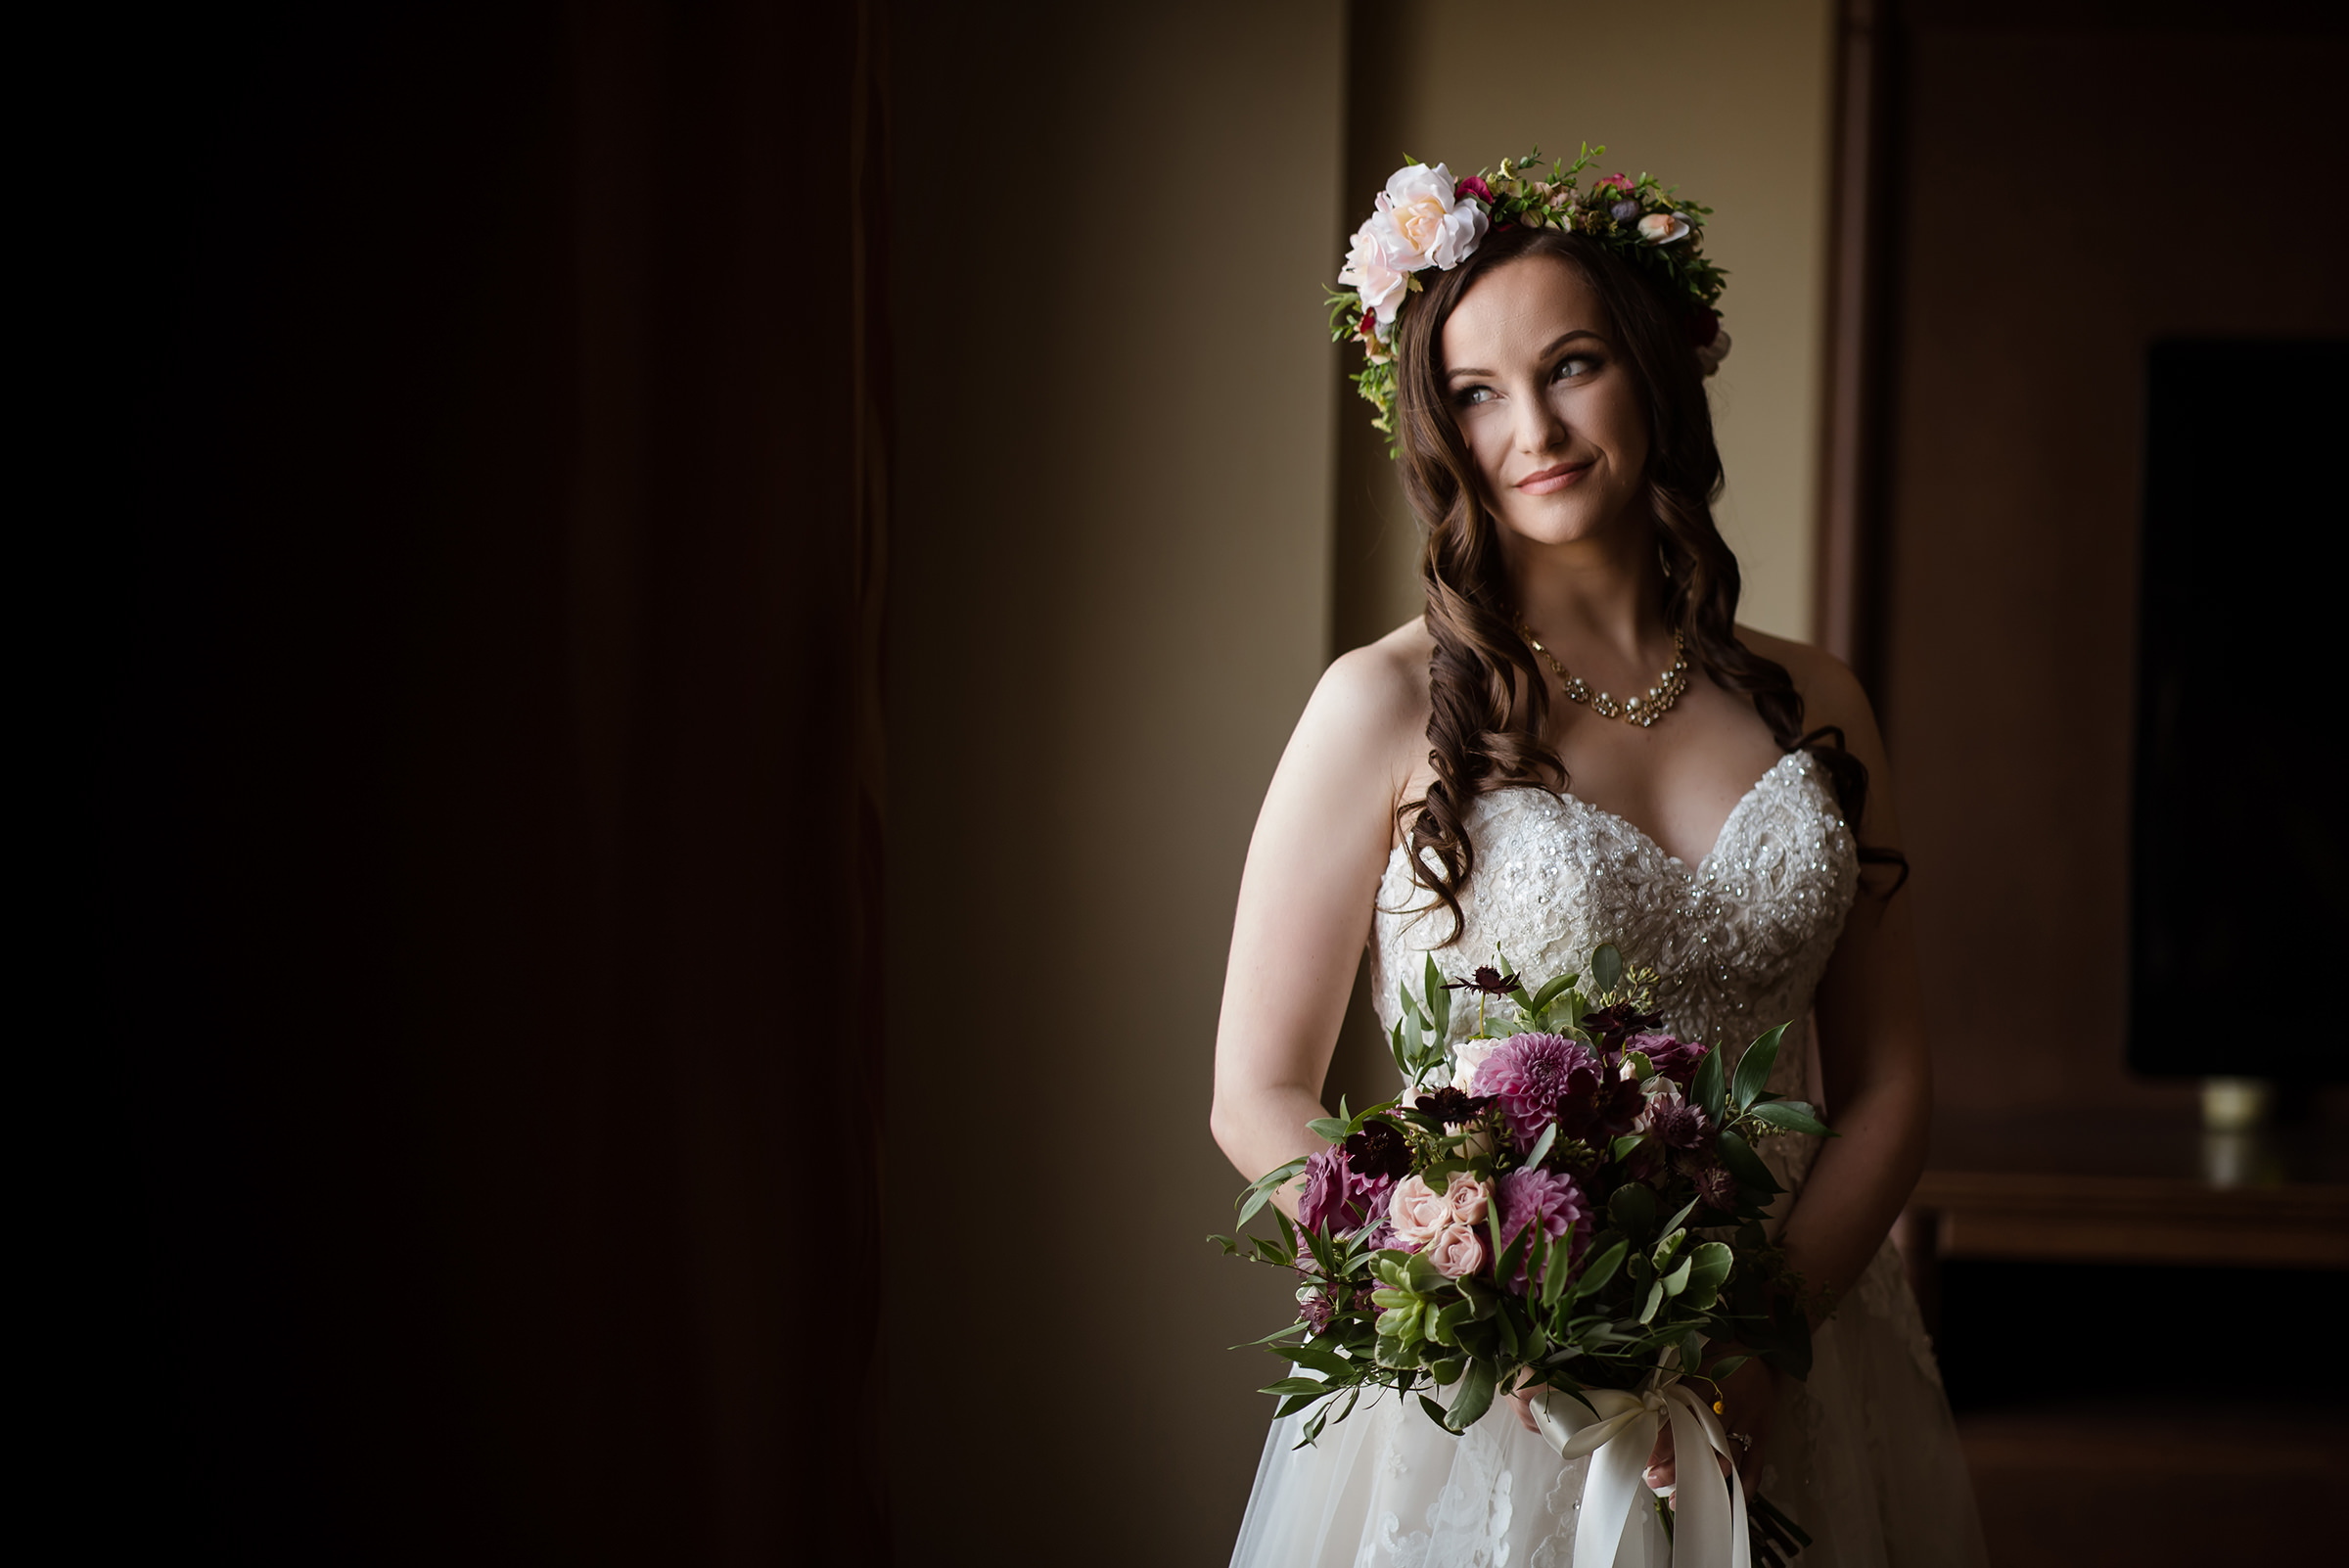 Bride with floral hairpiece and bouquet - David and Sherry Photography